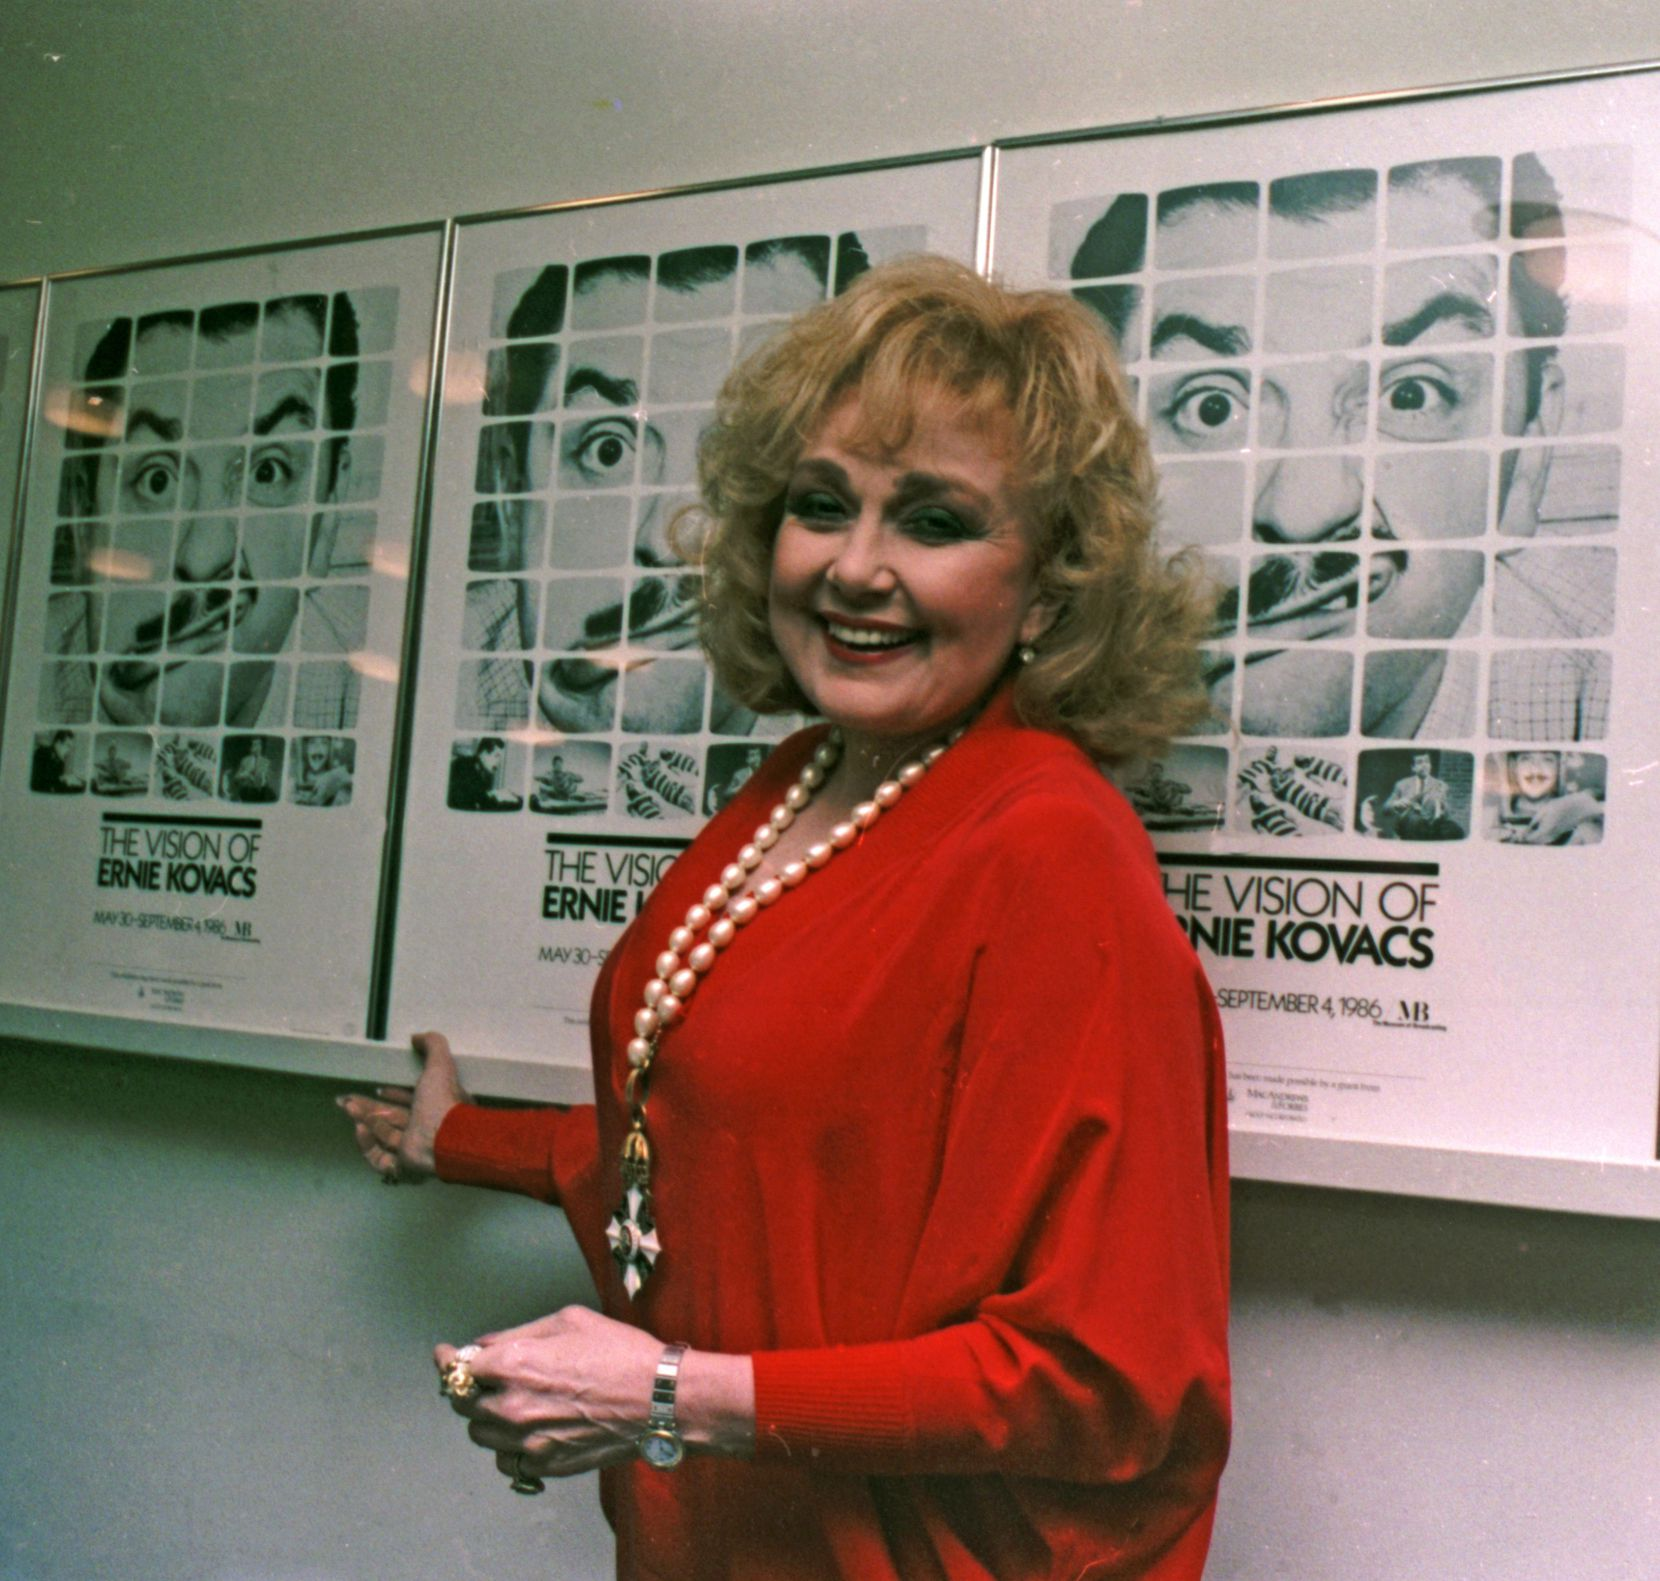 Edie Adams, the widow of Ernie Kovacs, stands next to posters of Kovacs in New York following a seminar on the work of Kovacs in this 1986 file photo. Adams, who won a Tony Award for bringing Daisy Mae to life on Broadway and was television foil for her husband, Ernie Kovacs, died Wednesday Oct. 15, 2008, in a Los Angeles hospital from pneumonia and cancer, publicist Henri Bollinger said. She was 81.